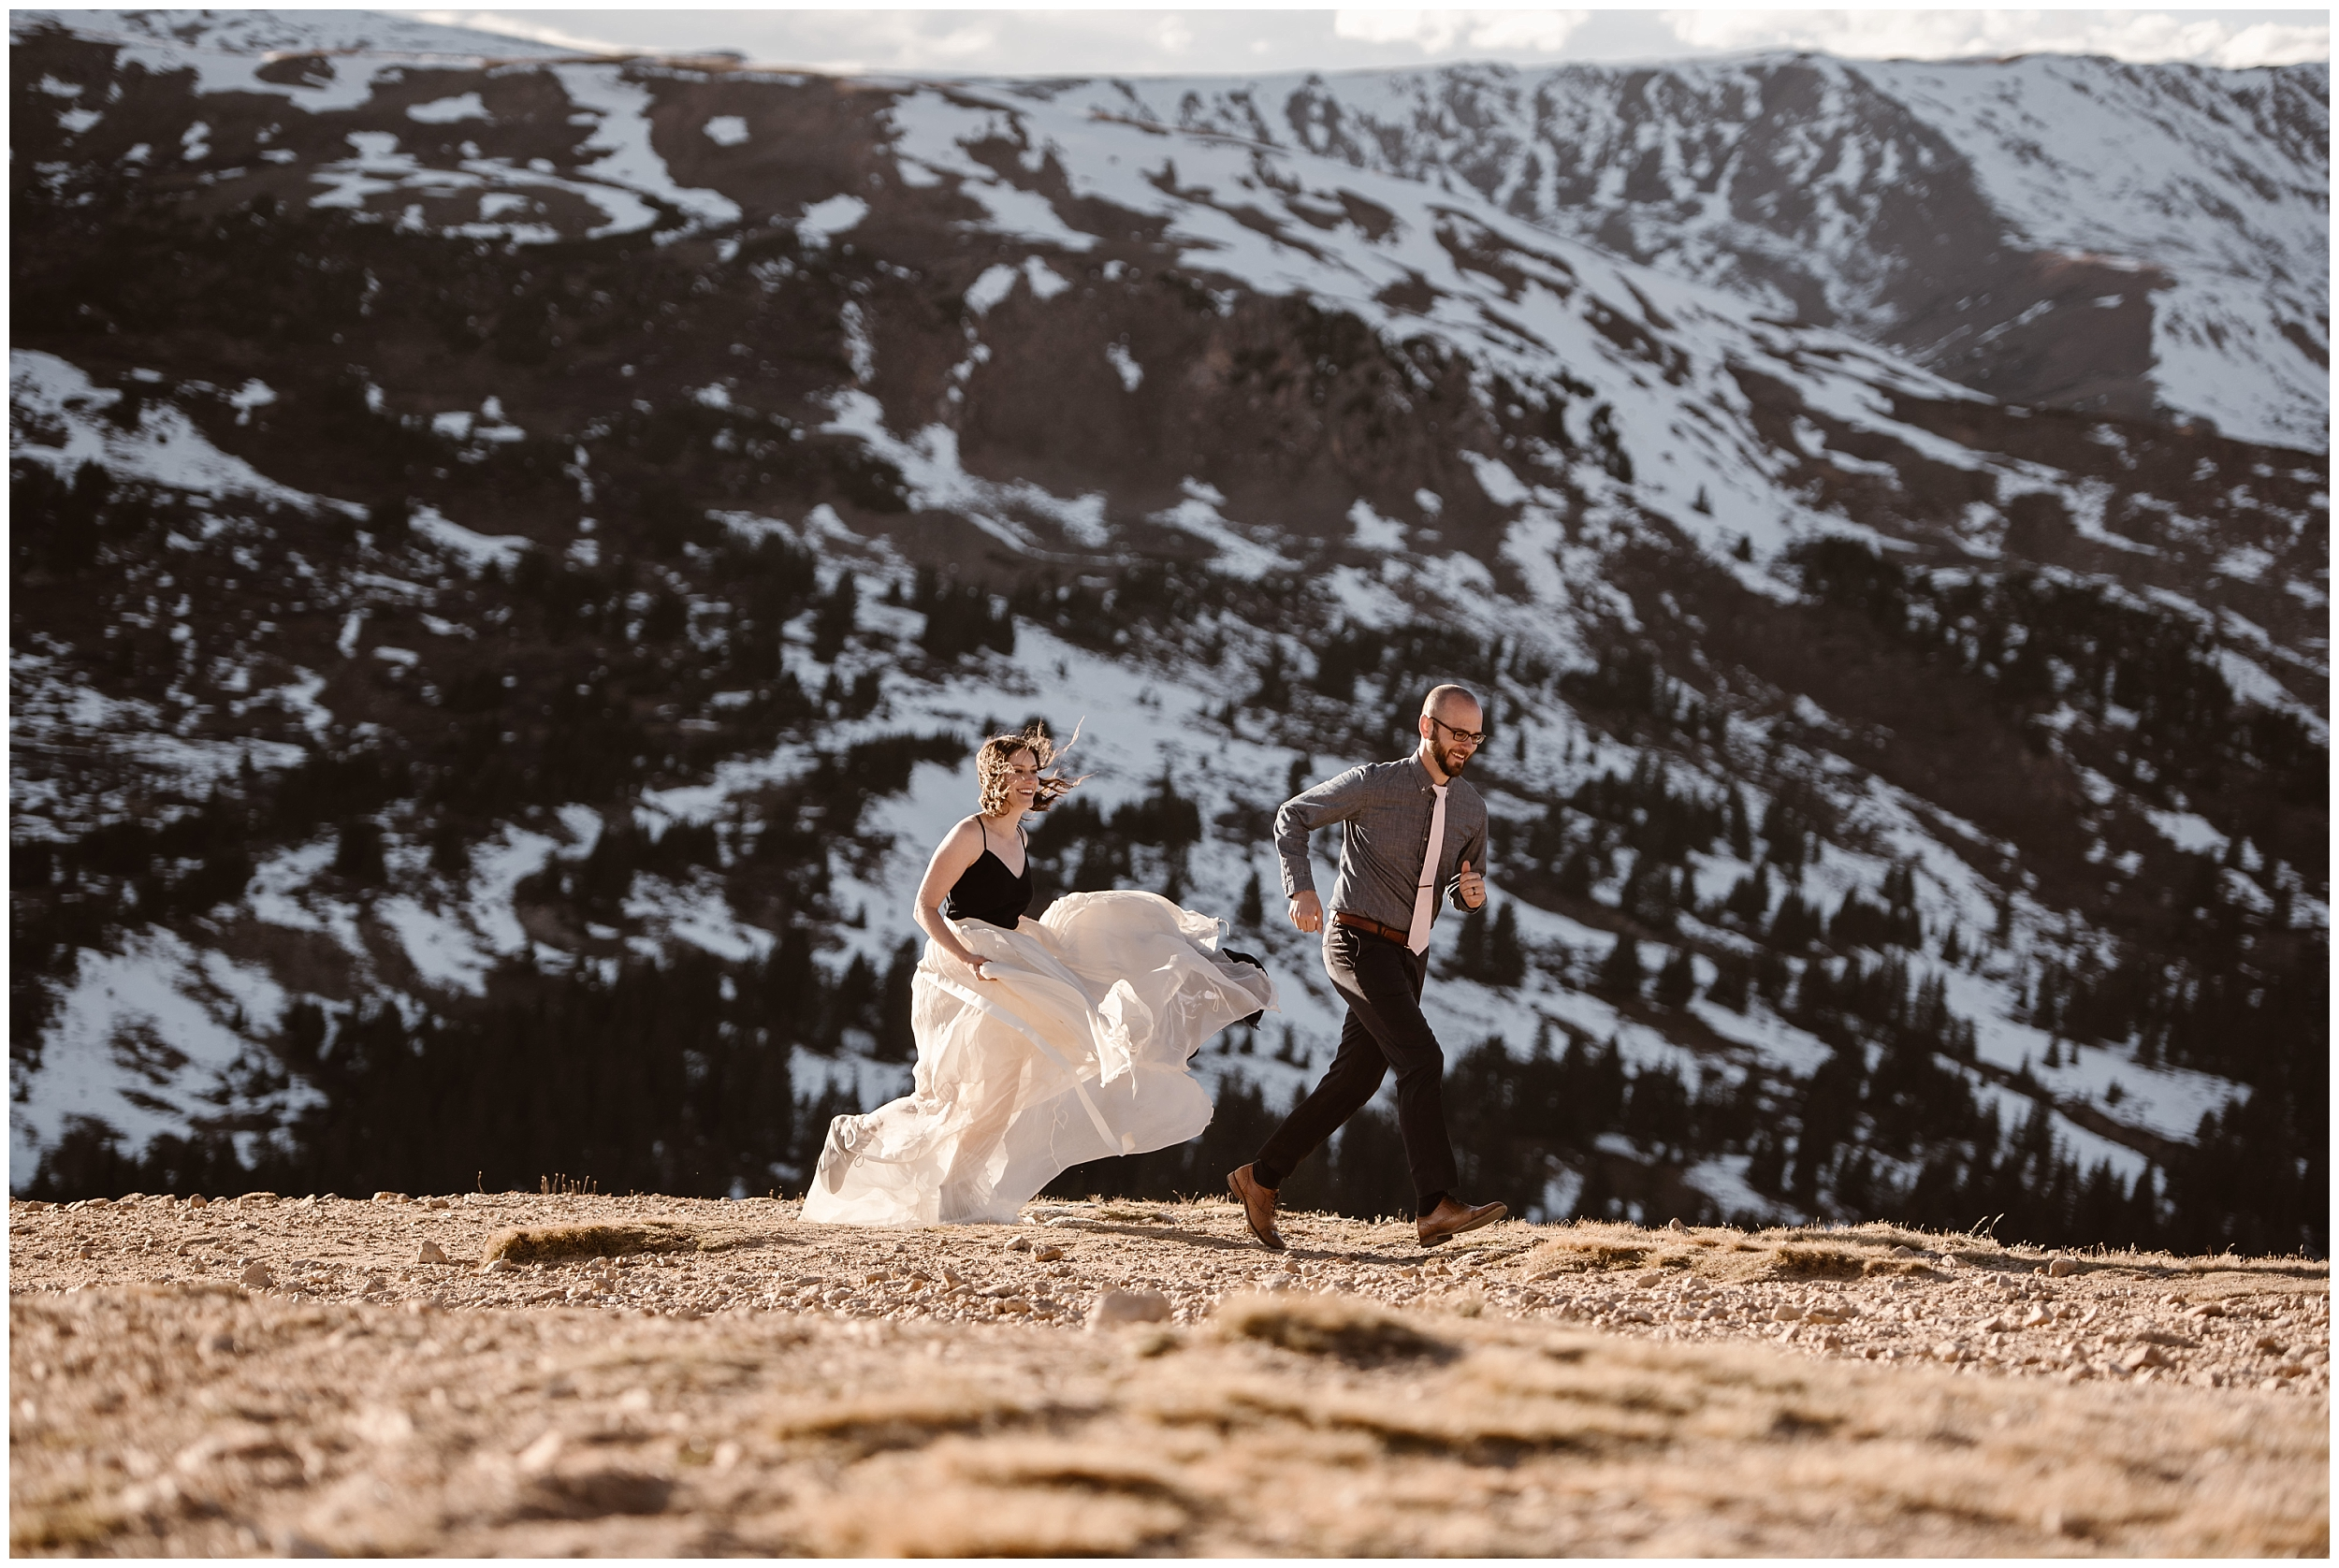 A young couple runs through an alpine meadow together in wedding attire. This simple wedding idea allowed this couple to elope in the destination they wanted to and have the elopement ceremony they wanted.